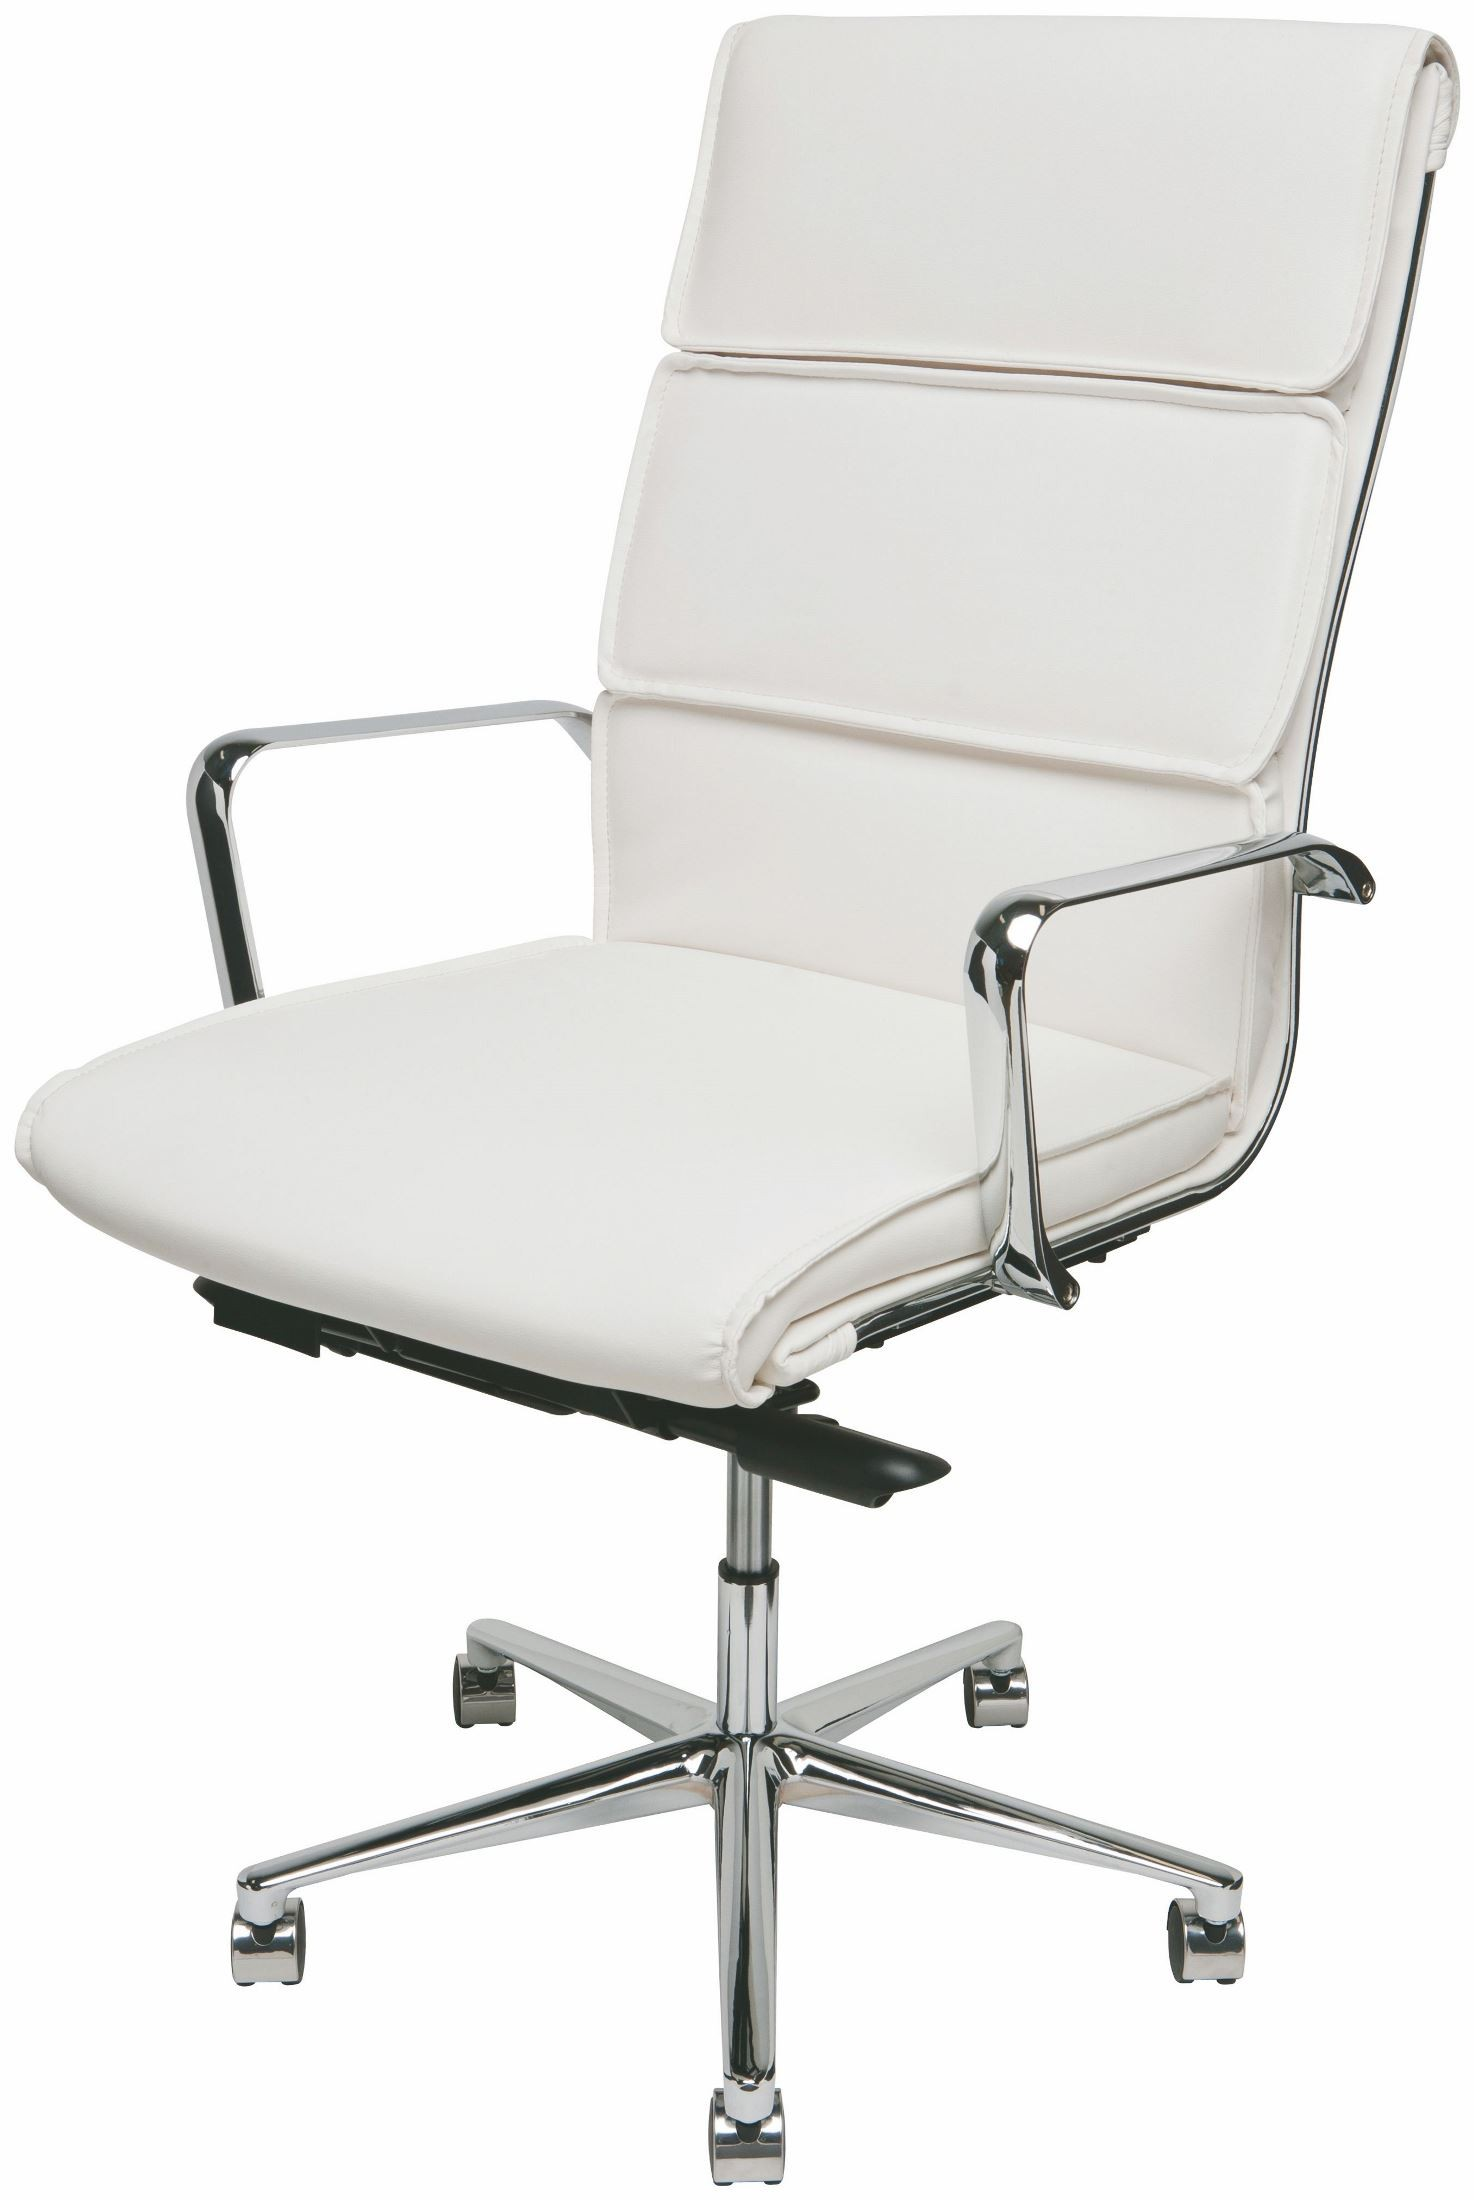 Lucia White and Silver Metal High Back fice Chair from